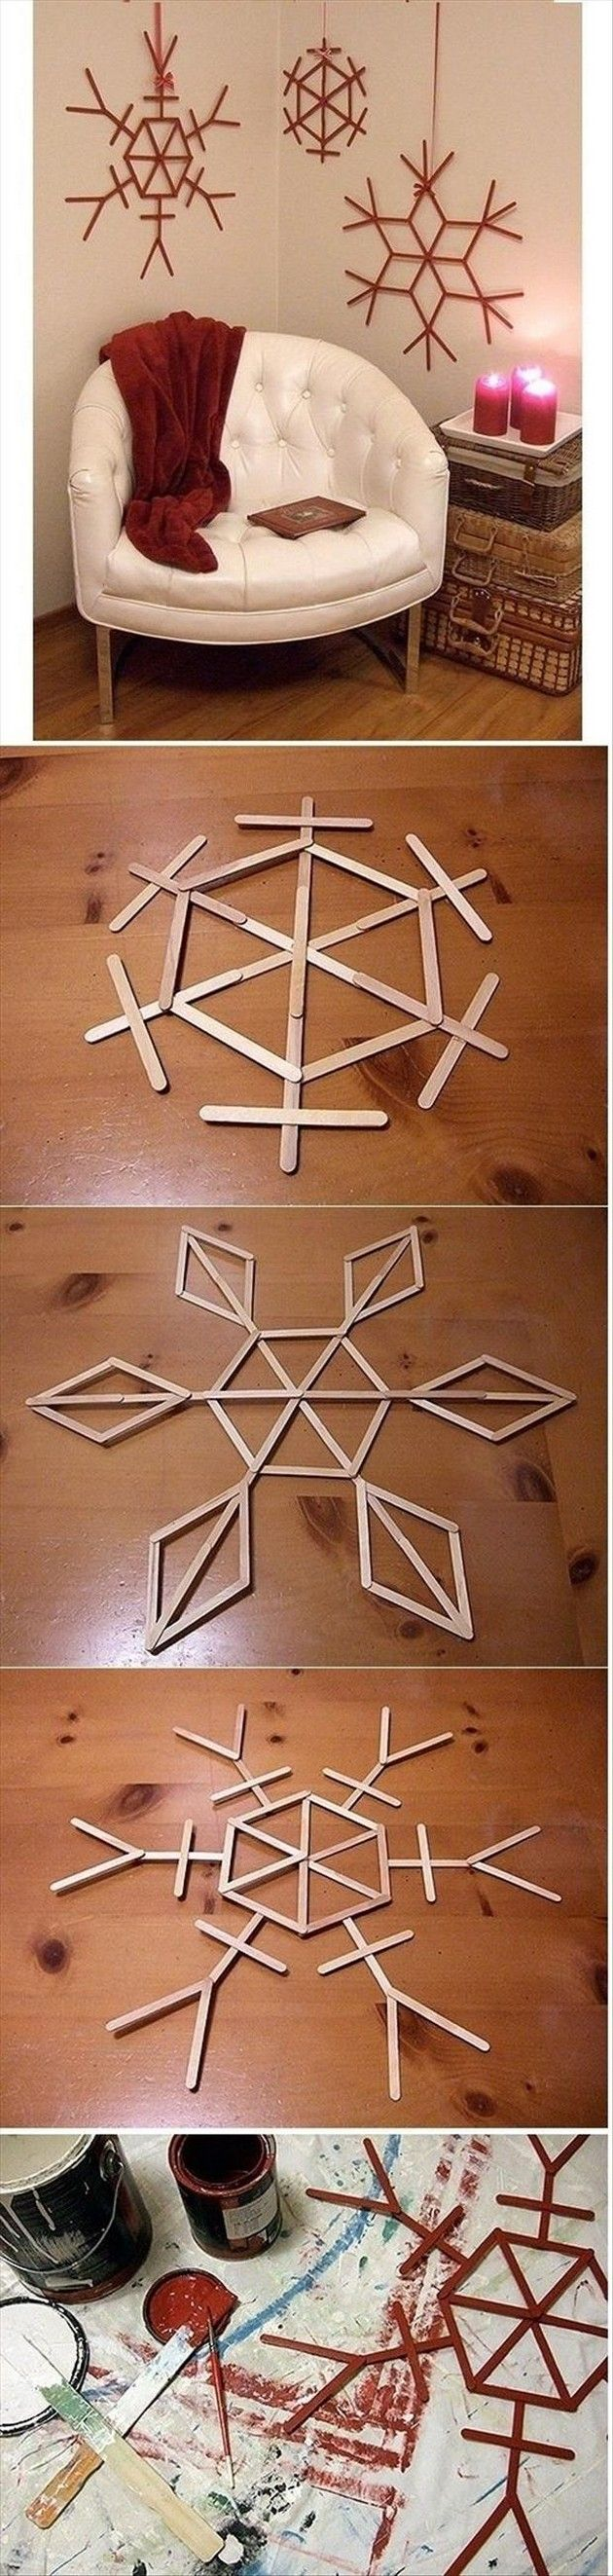 Popsicle stick church craft - Craft Art And Diy Ideas Snowflakes Craft Stickspopsicle